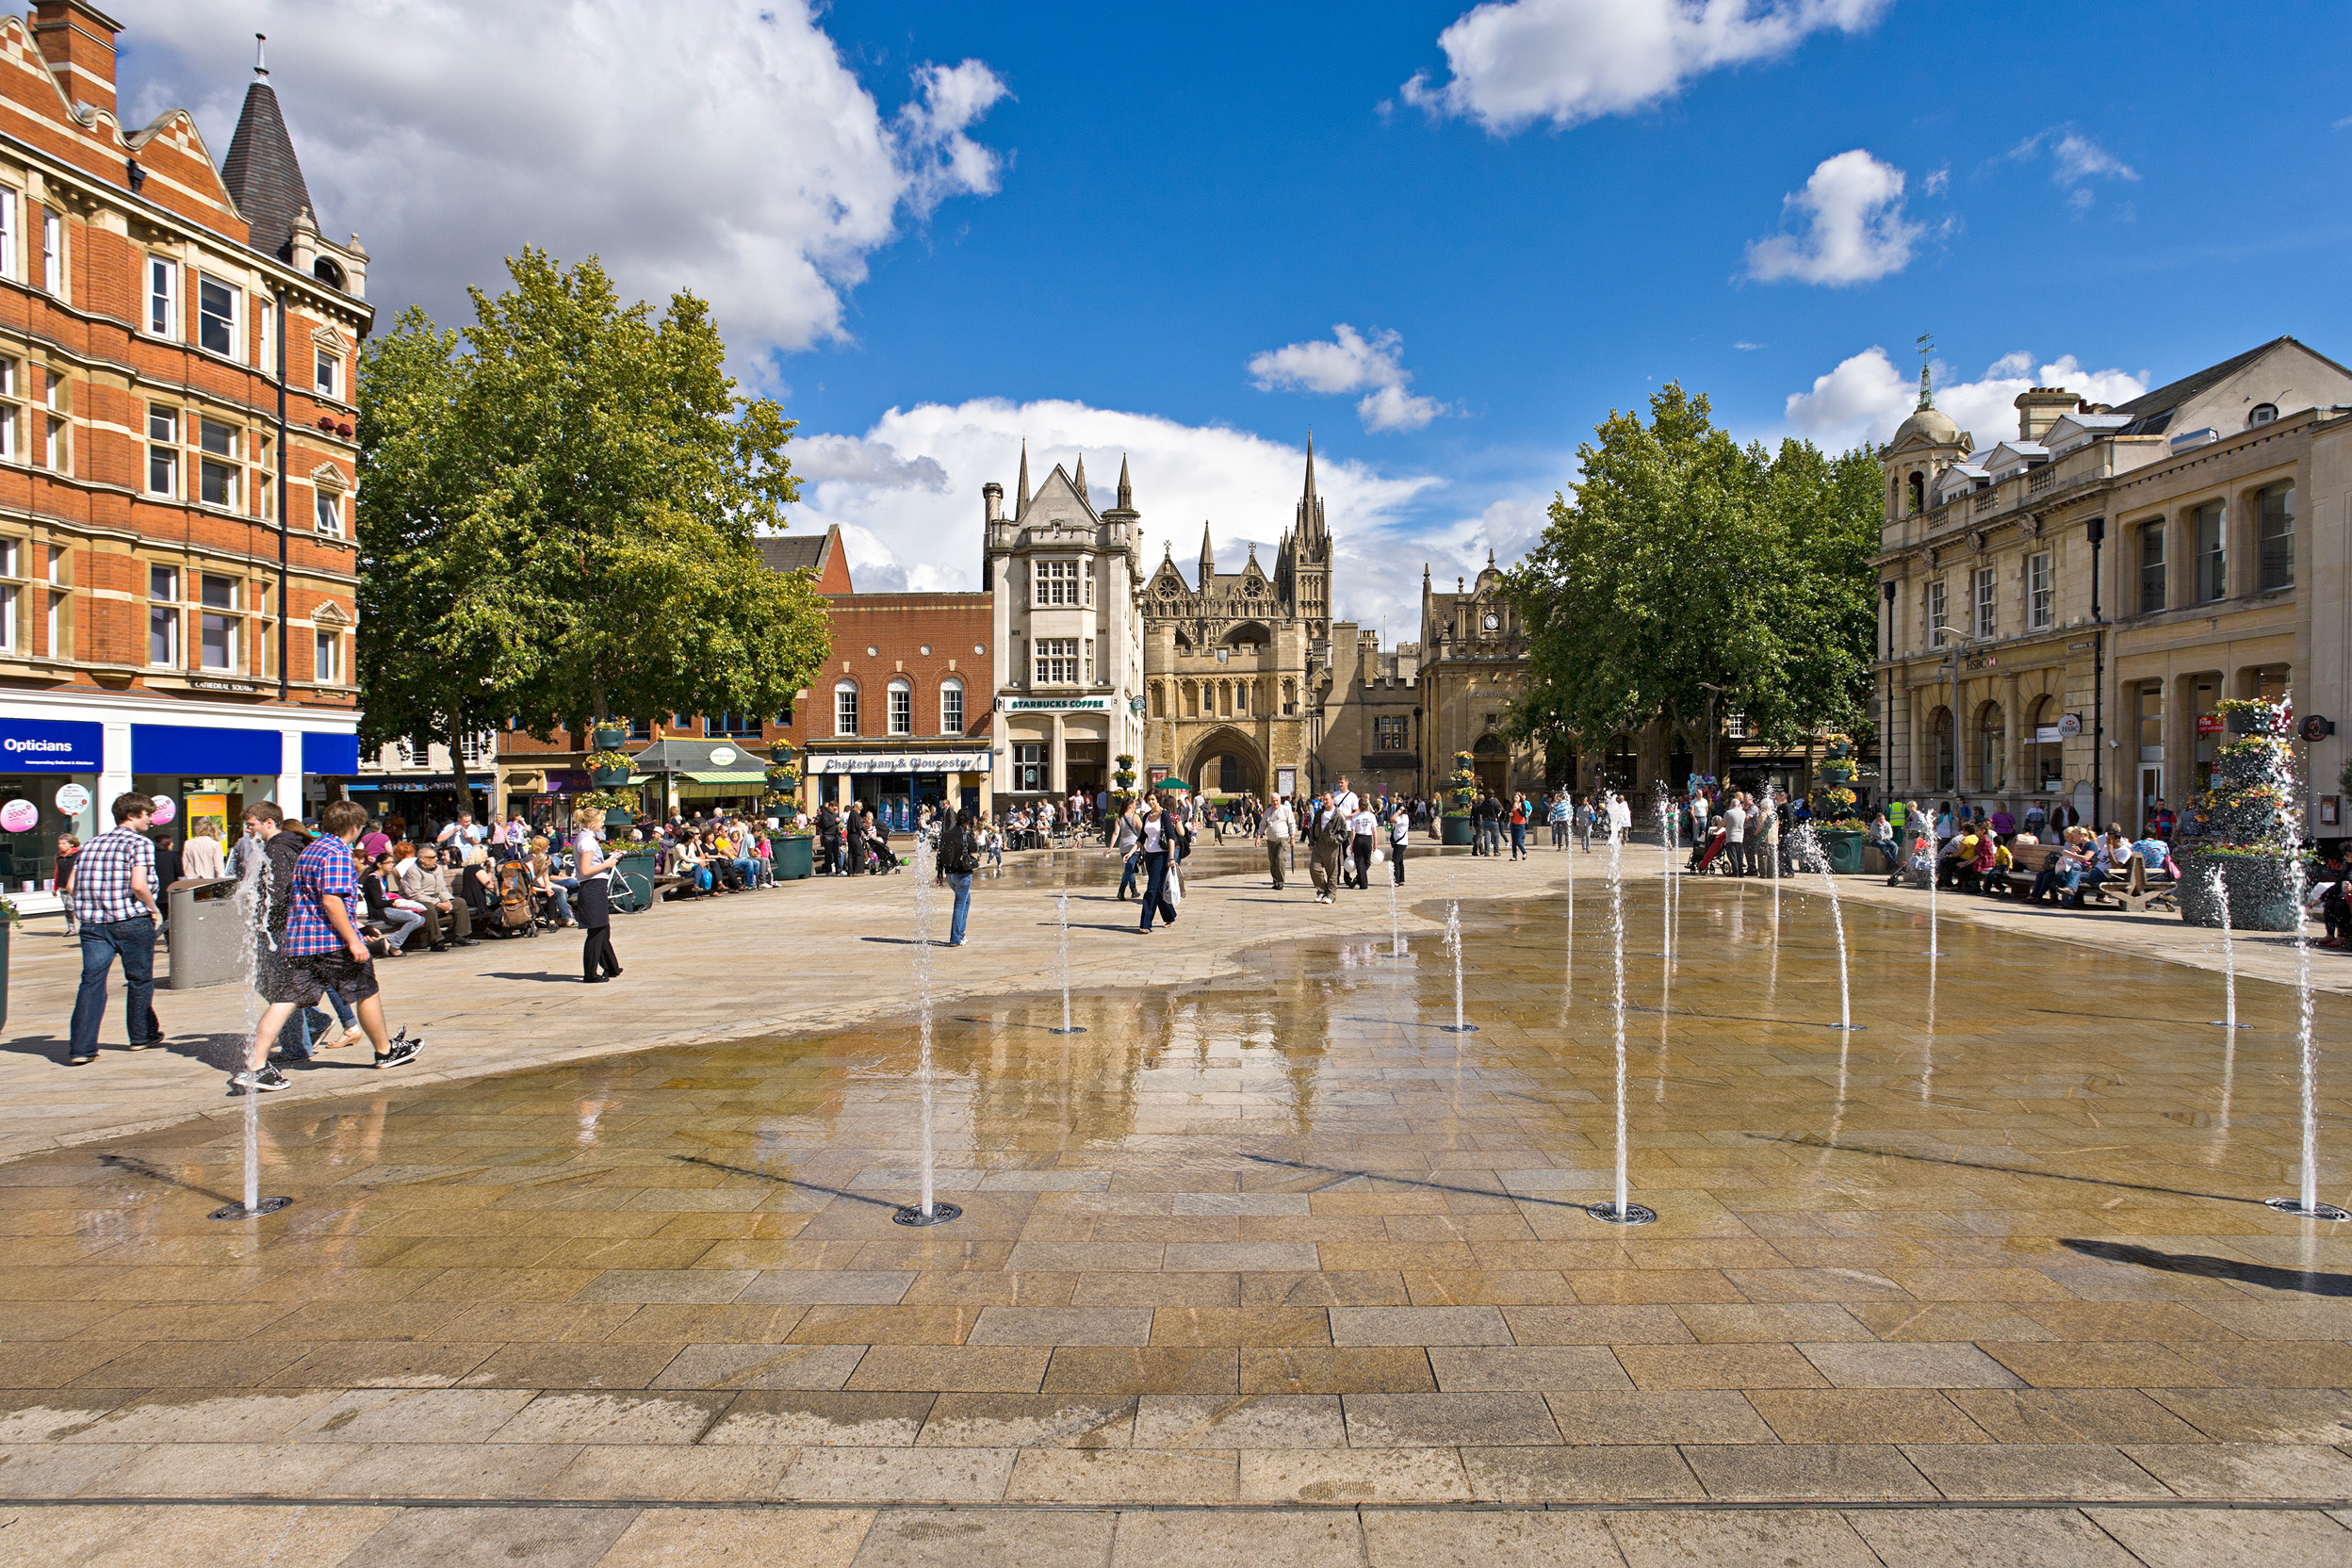 Taxi Peterborough – Heathrow Airport from £135.00*